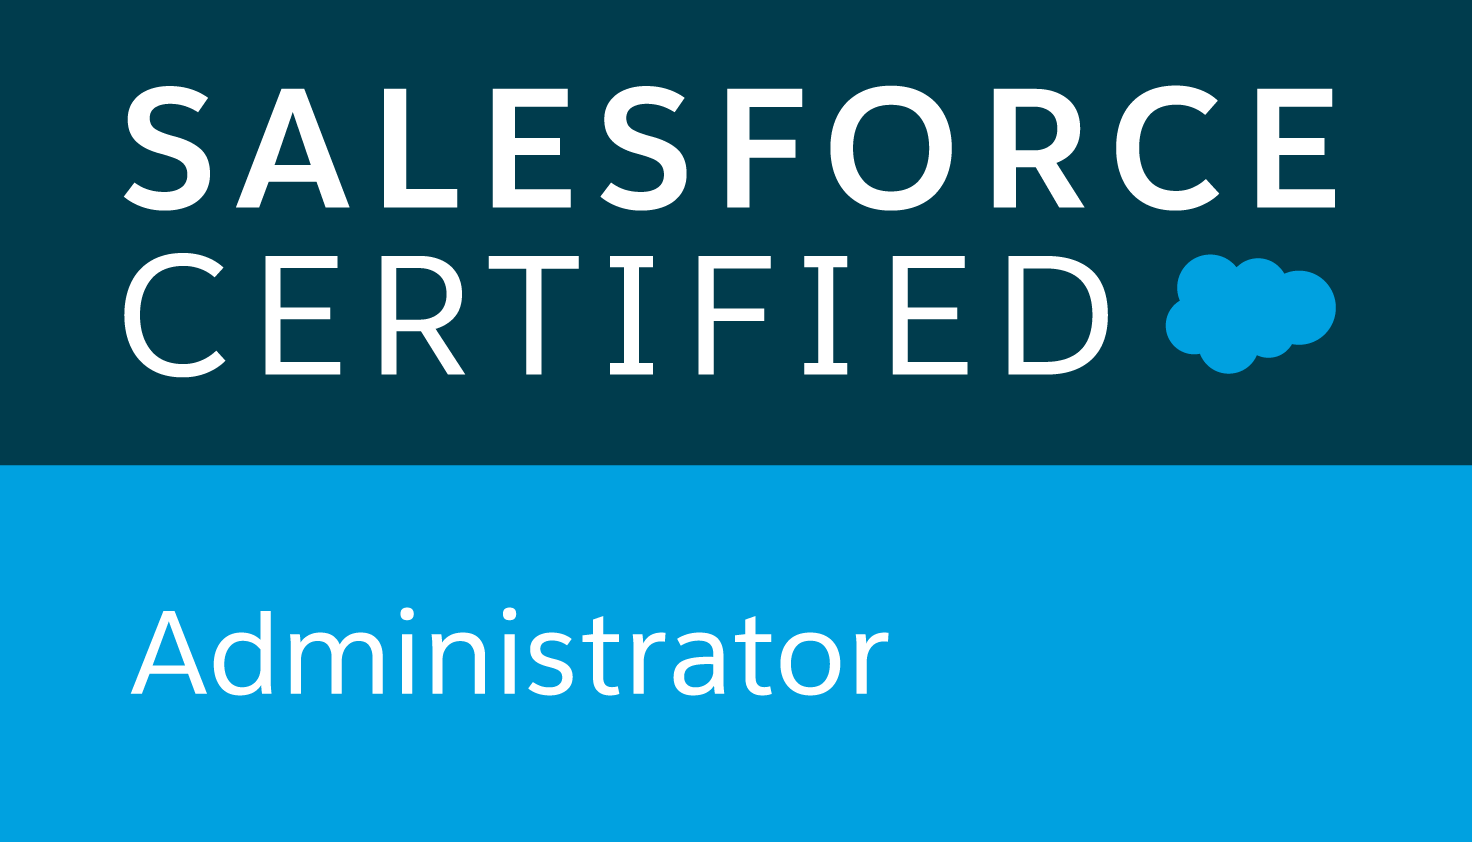 Salesforce Certified Administrator Certification